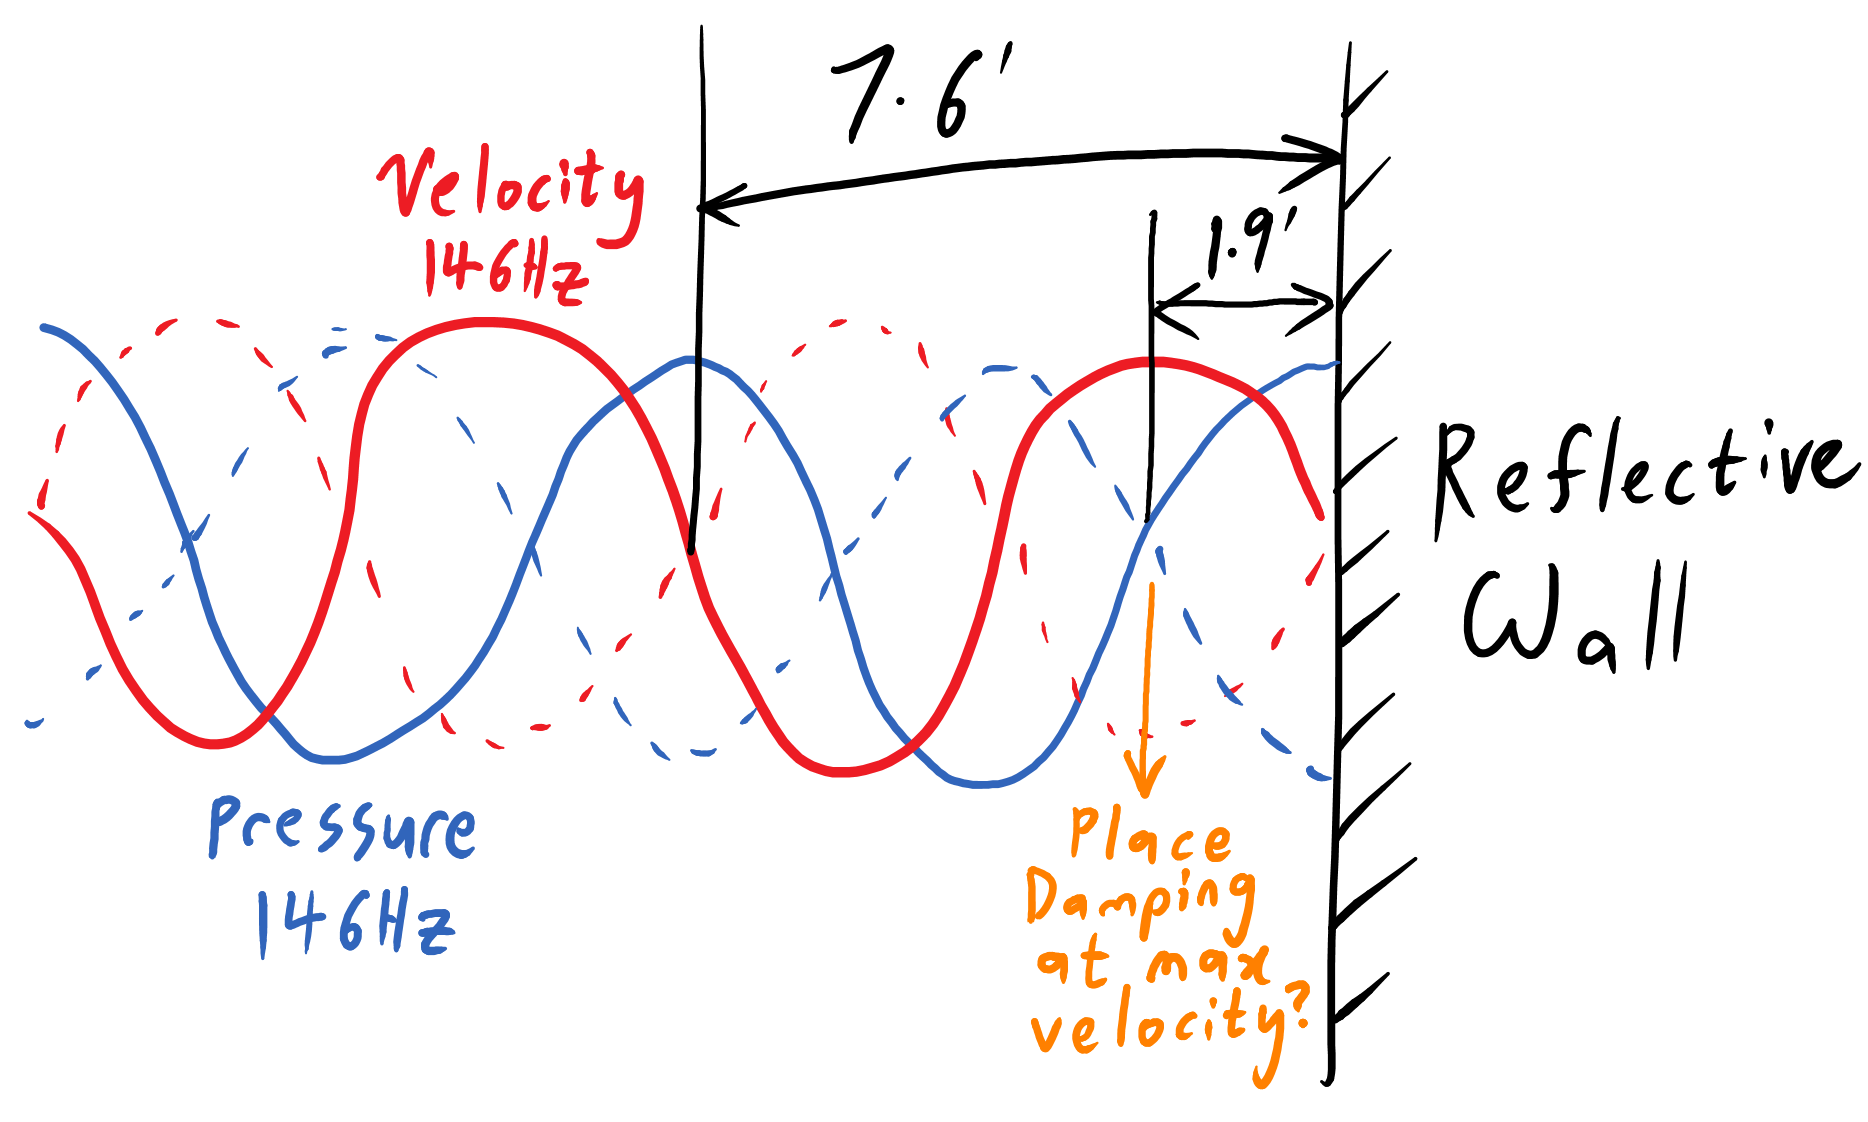 diagram of a 146Hz standing wave at a wall. a quarter-wavelength from the wall, velocity (red) is maximum and pressure (blue) is minimum.